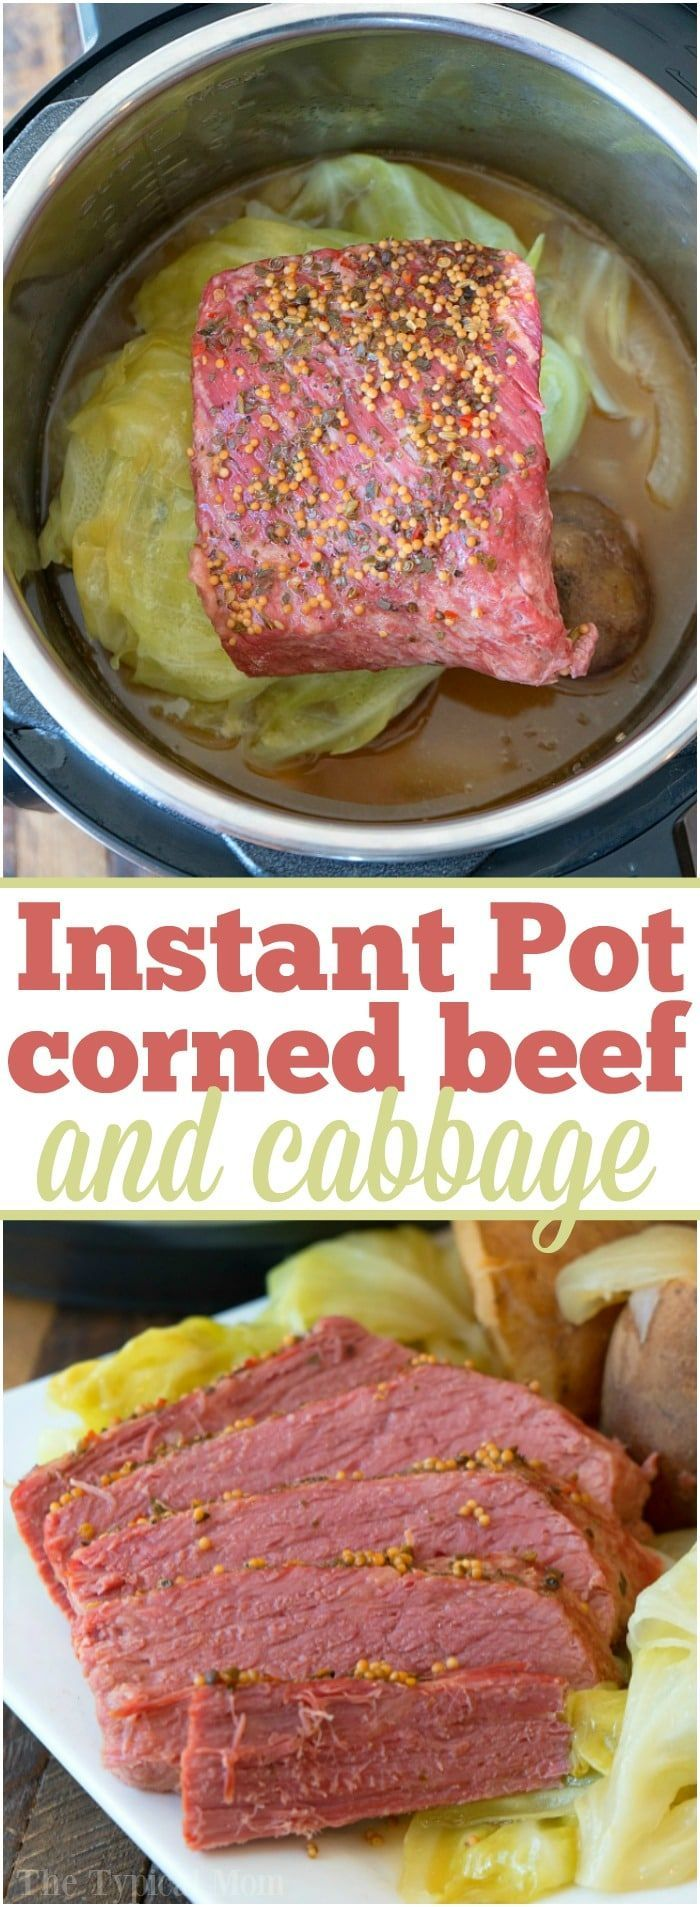 This easy Instant Pot corned beef and cabbage recipe is perfect for St. Patrick's Day or any other day of the year! Moist and flavorful corned beef brisket cooked in your pressure cooker is simple to do with a potato trick I use quite often. If you haven'